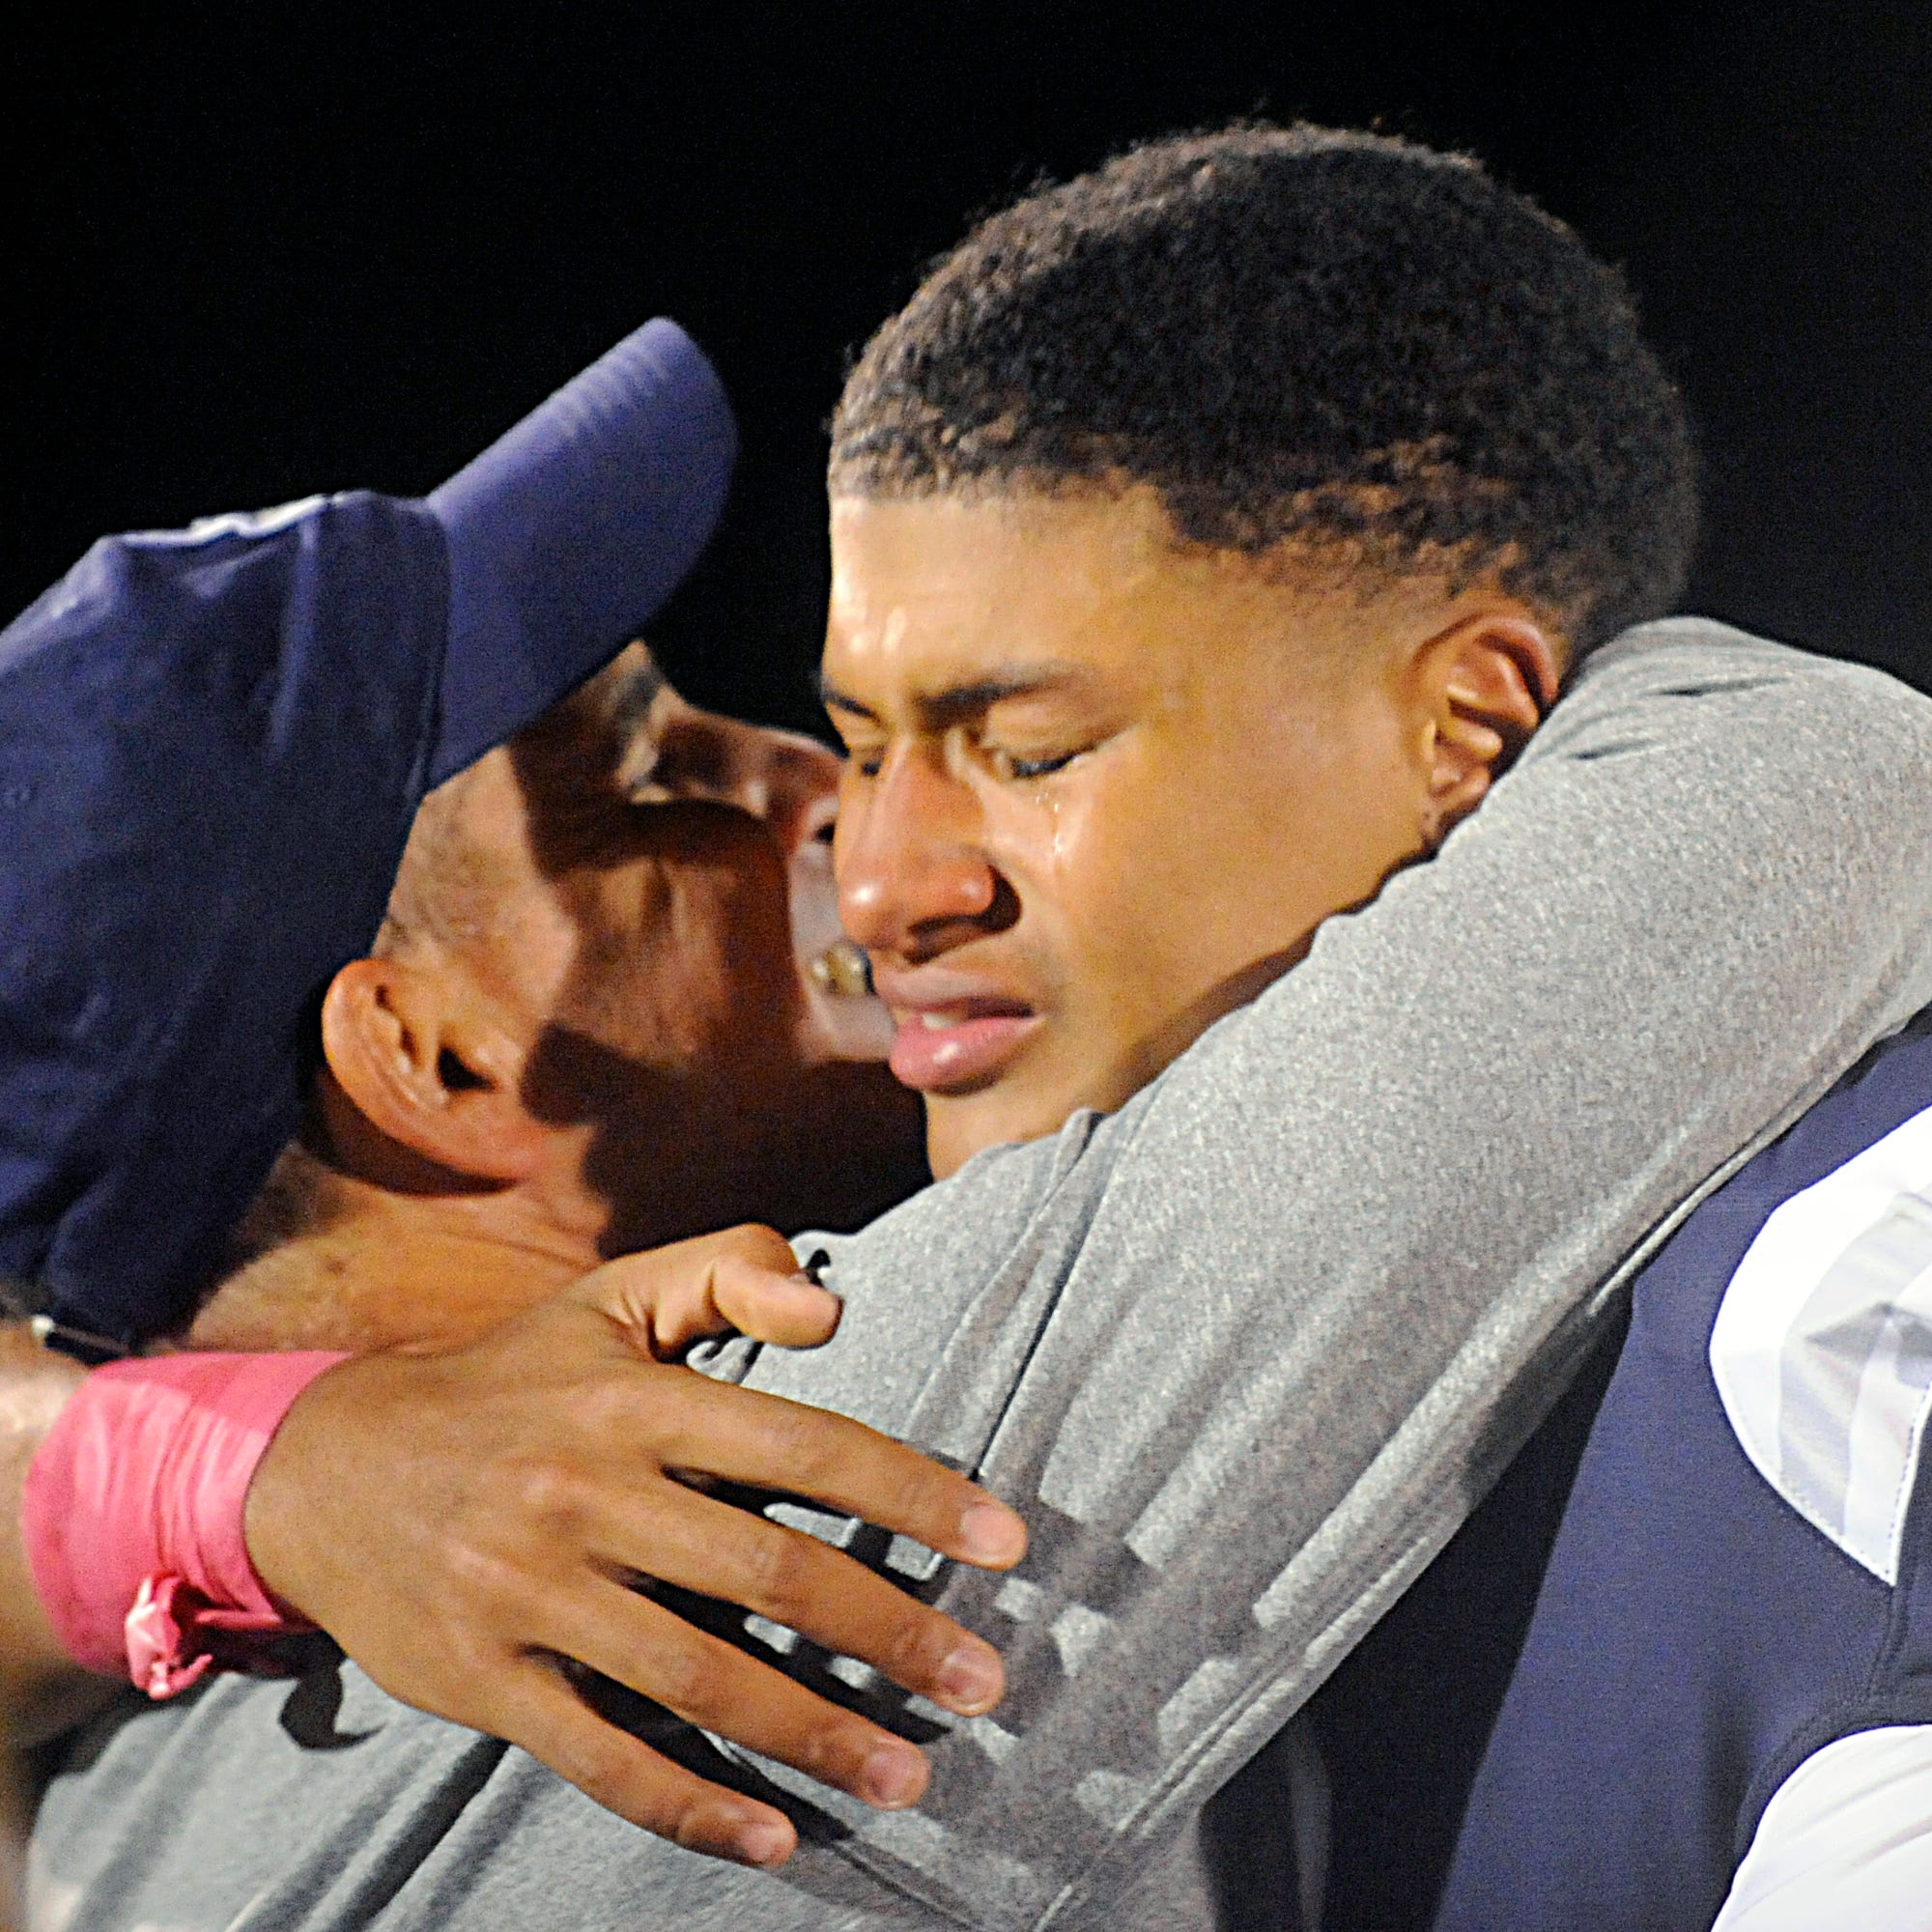 South Jersey Football: Senior Night win over Spirit a special one for Hermits